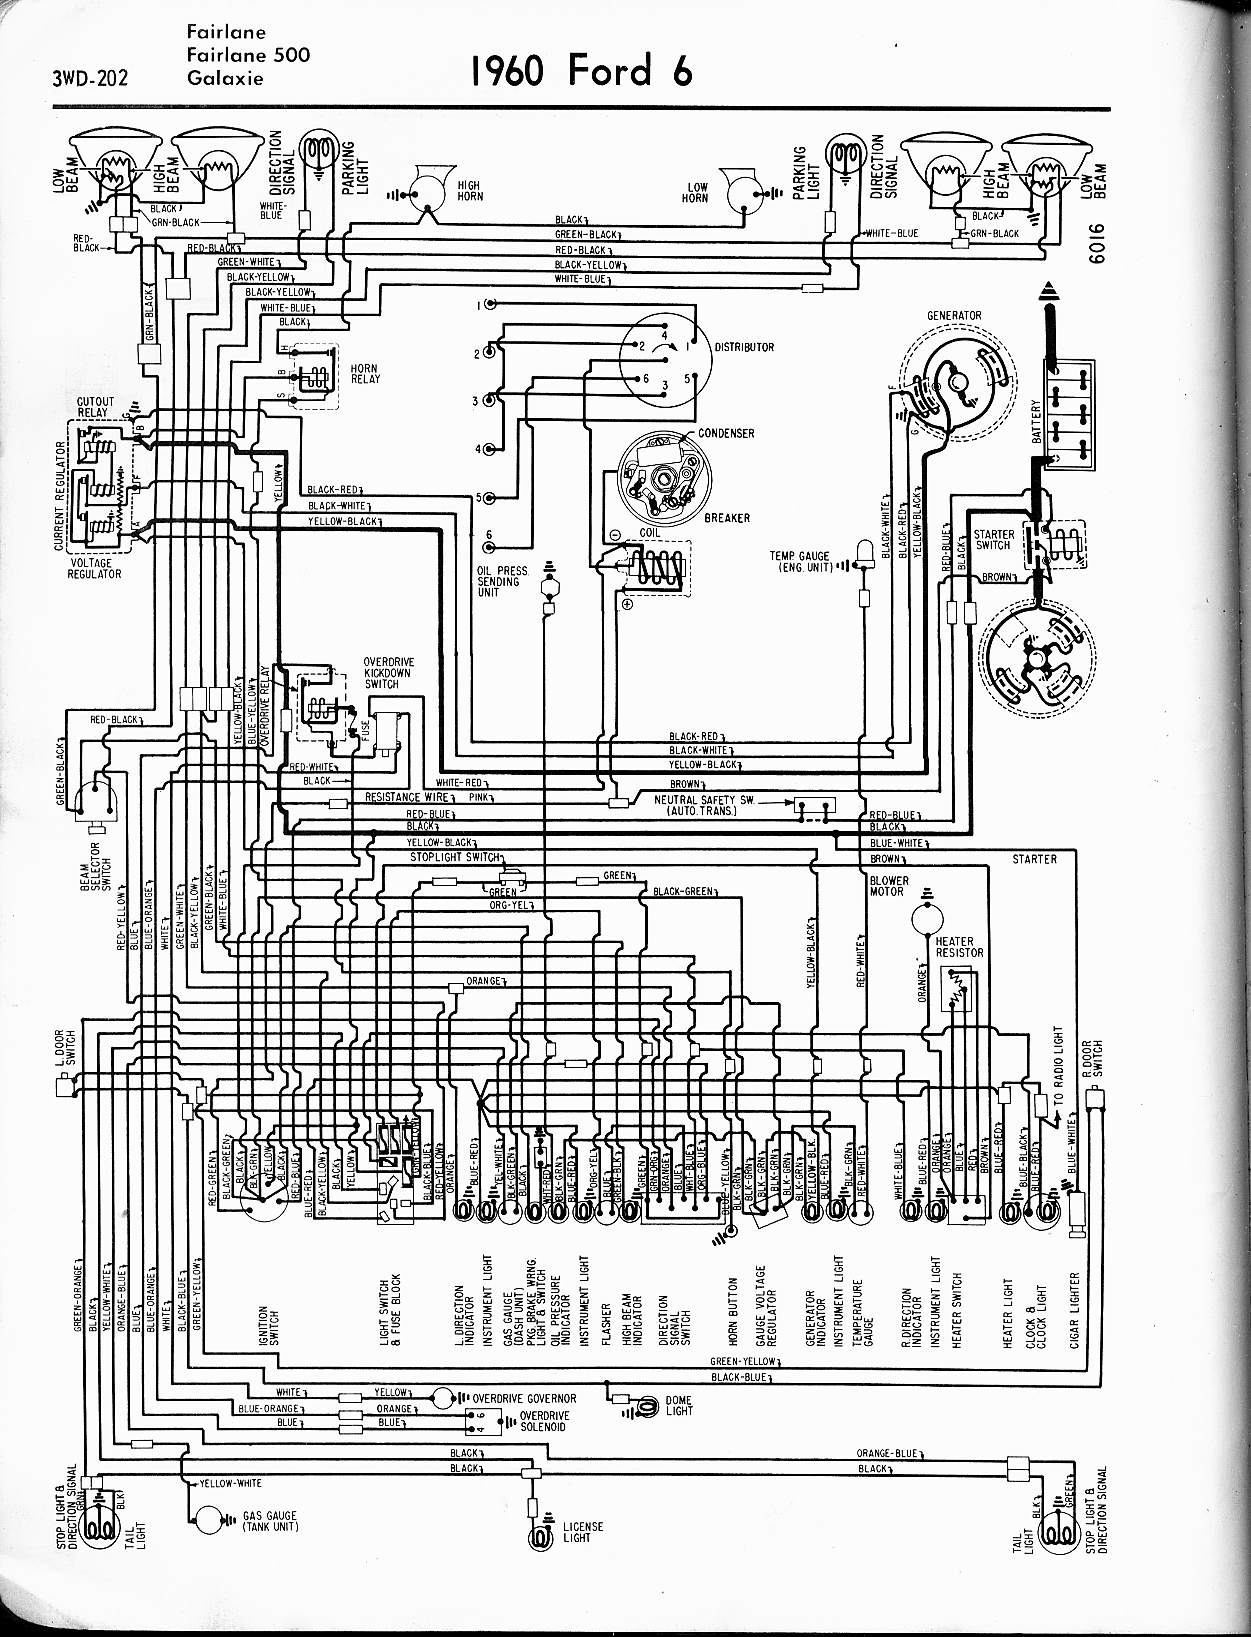 MWire5765 202 1979 ford f100 turn signal wiring diagram wiring diagram simonand f100 wiring diagram at virtualis.co